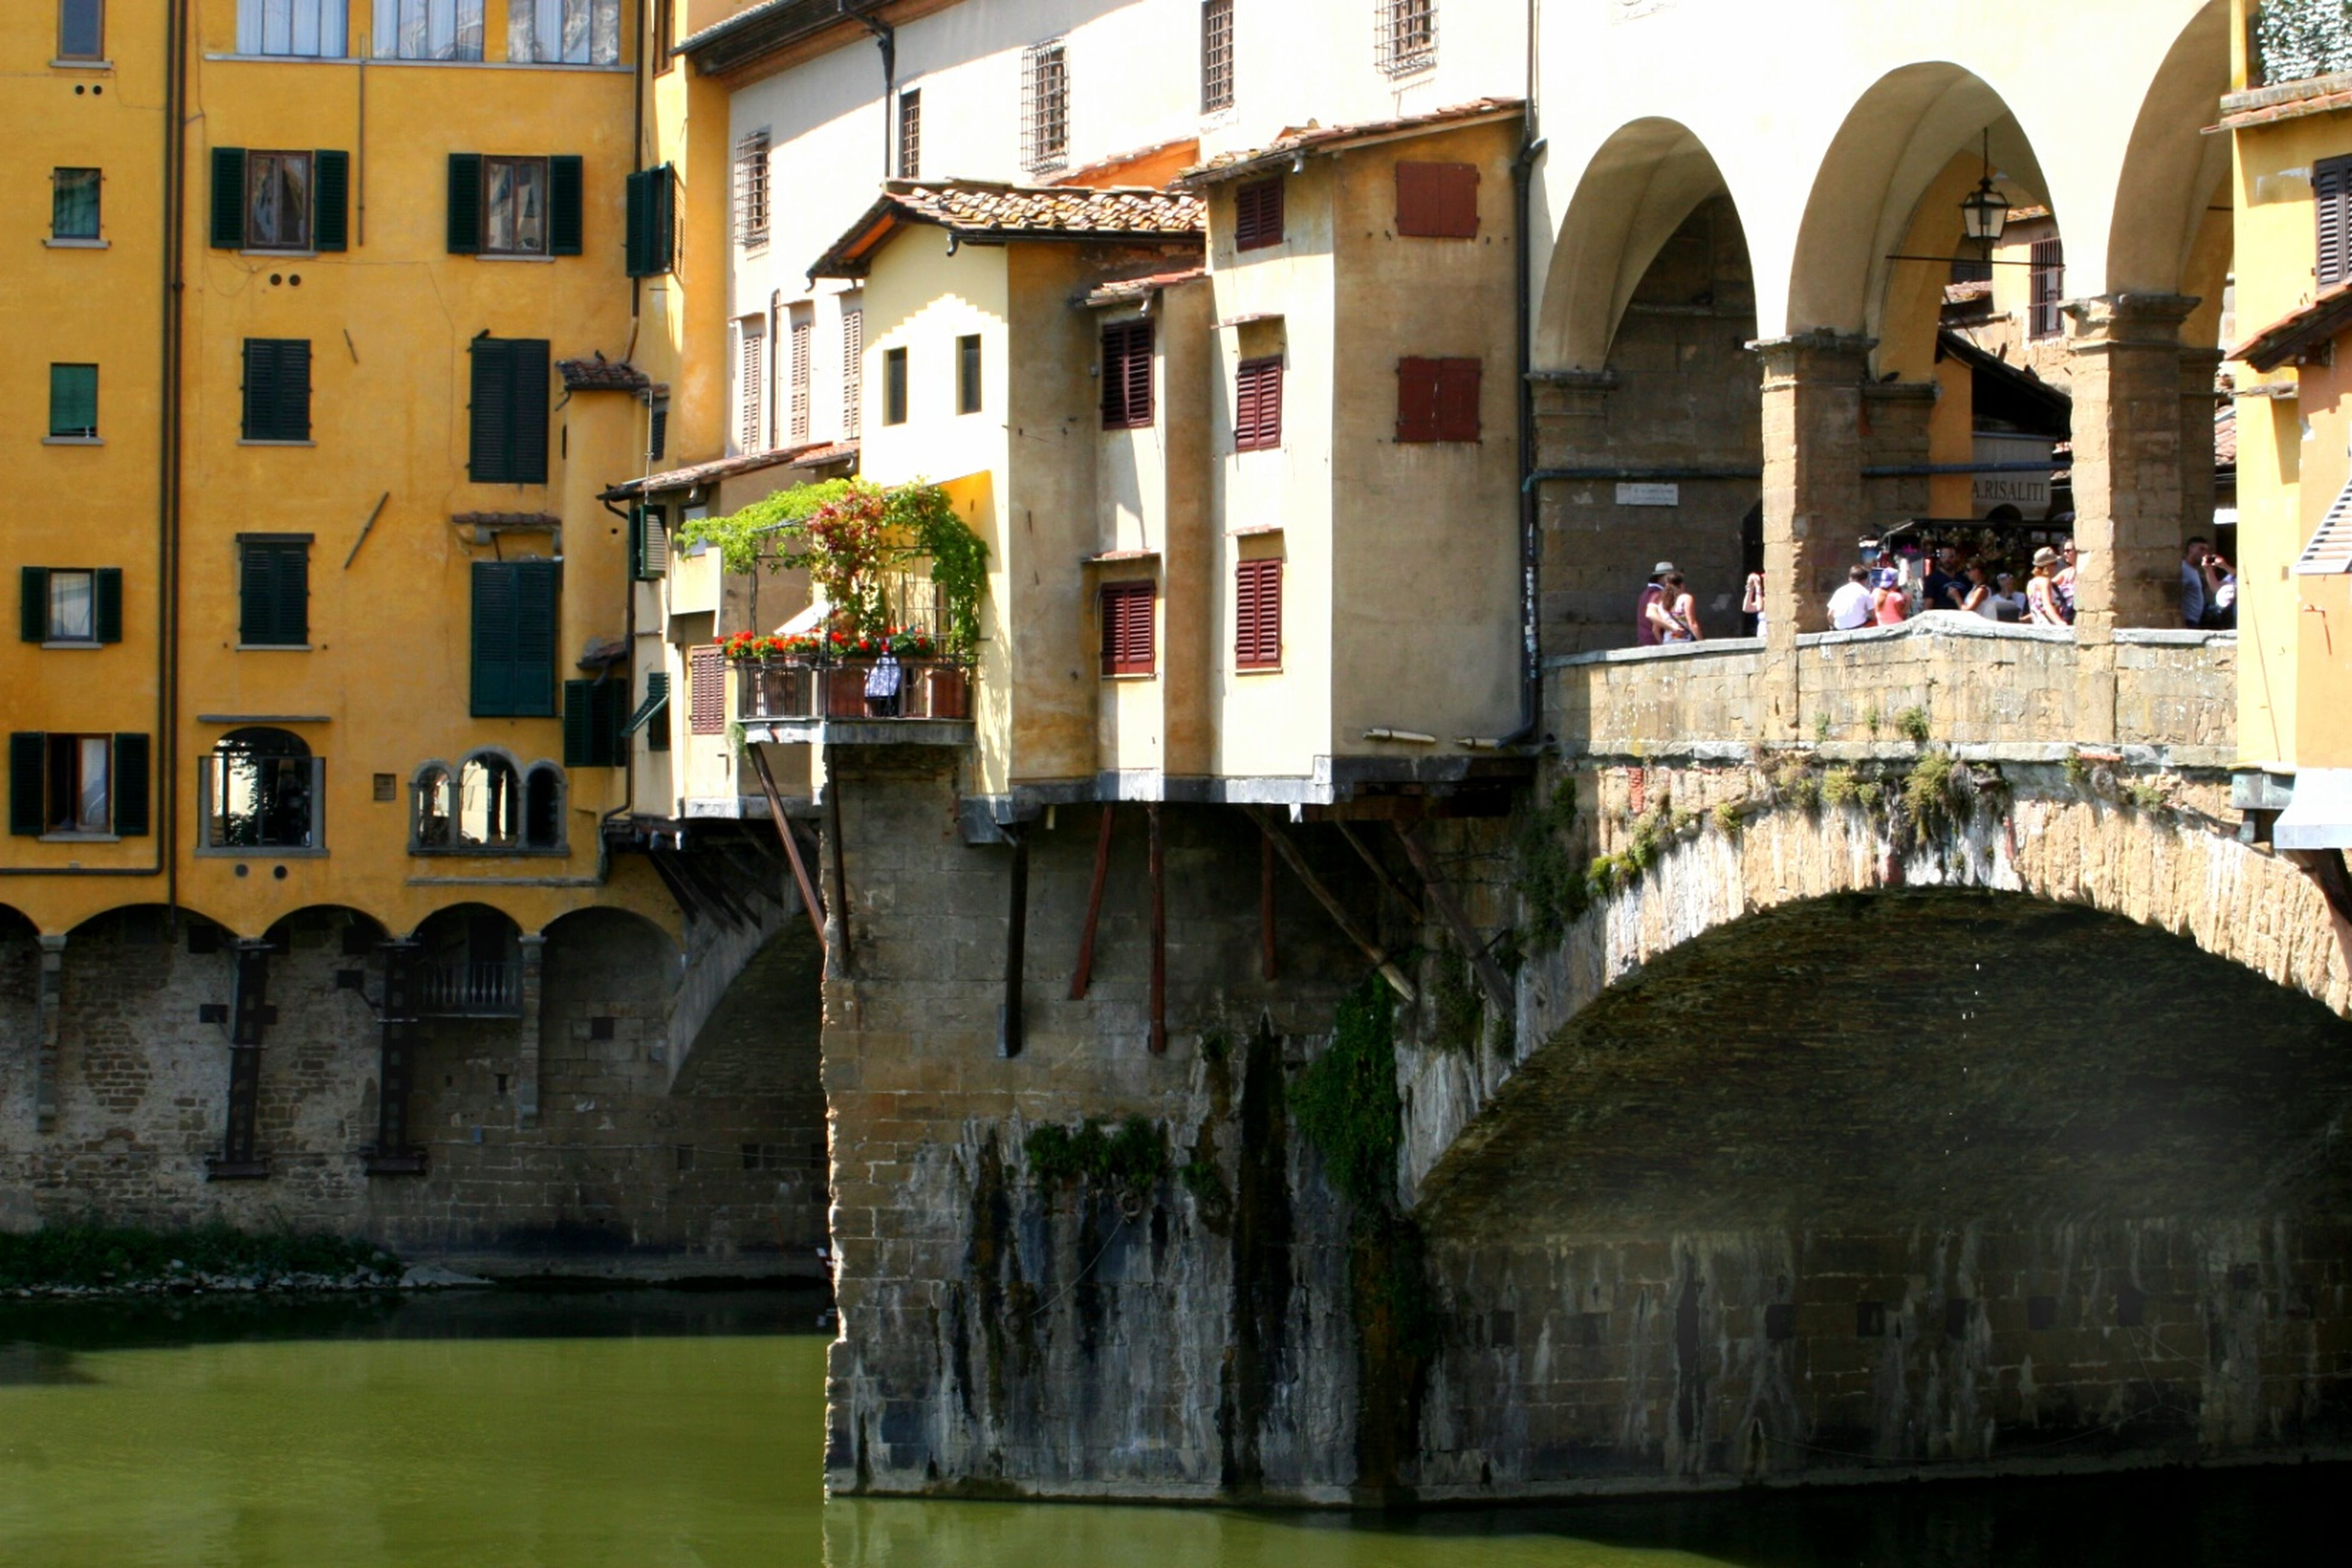 architecture, built structure, building exterior, arch, building, water, history, facade, city, canal, arched, window, reflection, outdoors, old town, architectural column, incidental people, day, travel destinations, historic